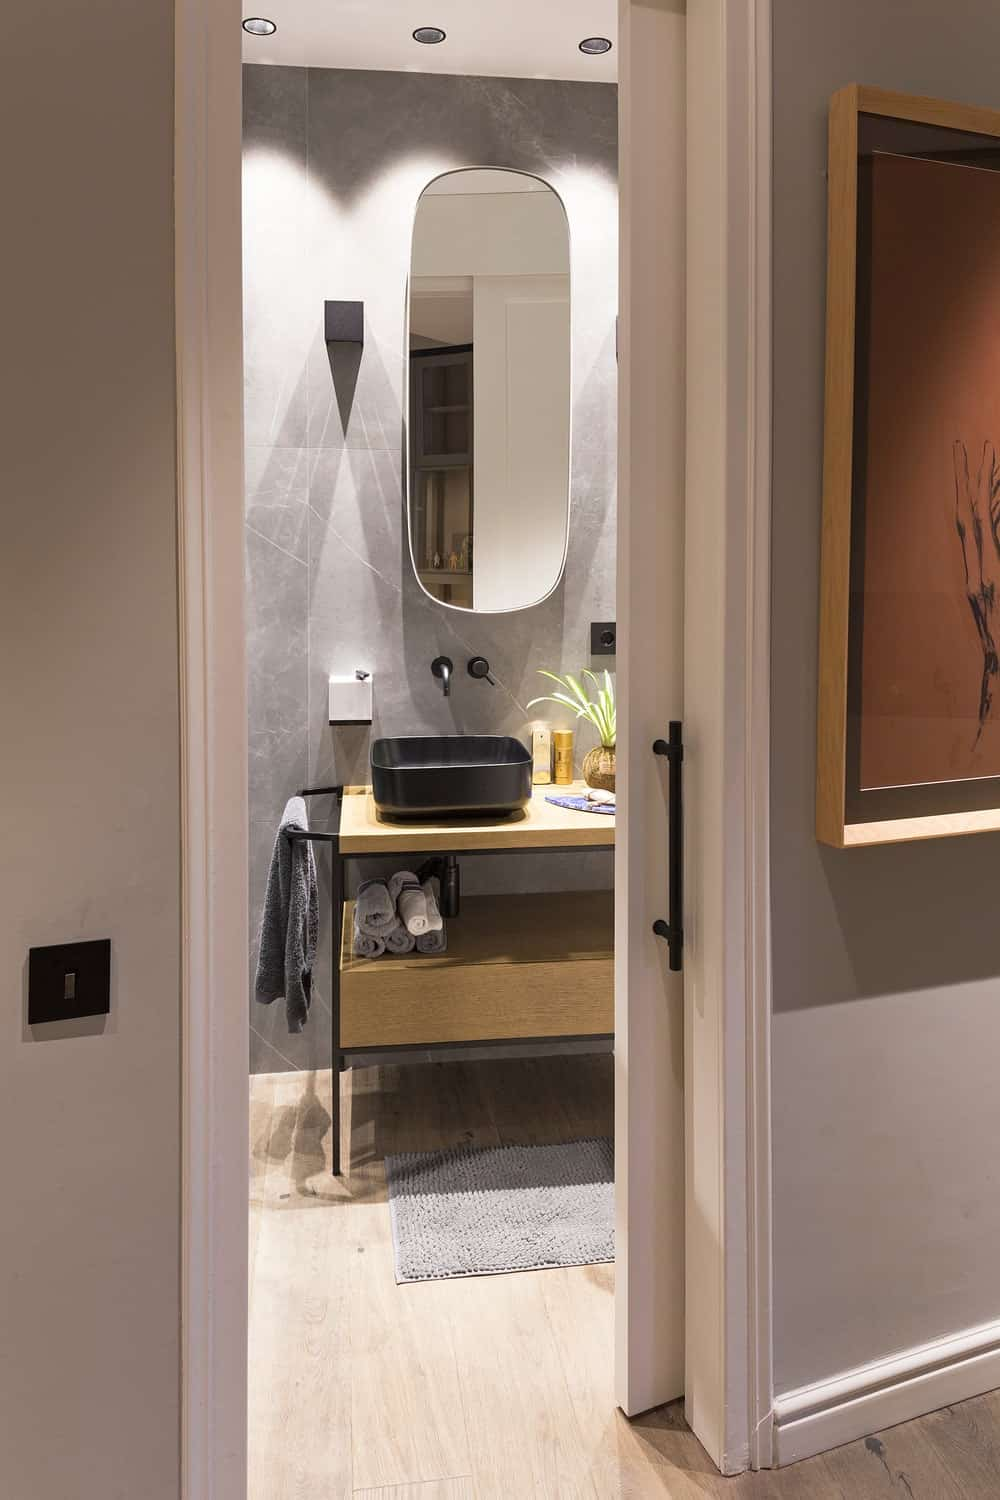 This is a view of the bathroom from the vantage of the hallway with a wooden vanity that has a dark freestanding sink.